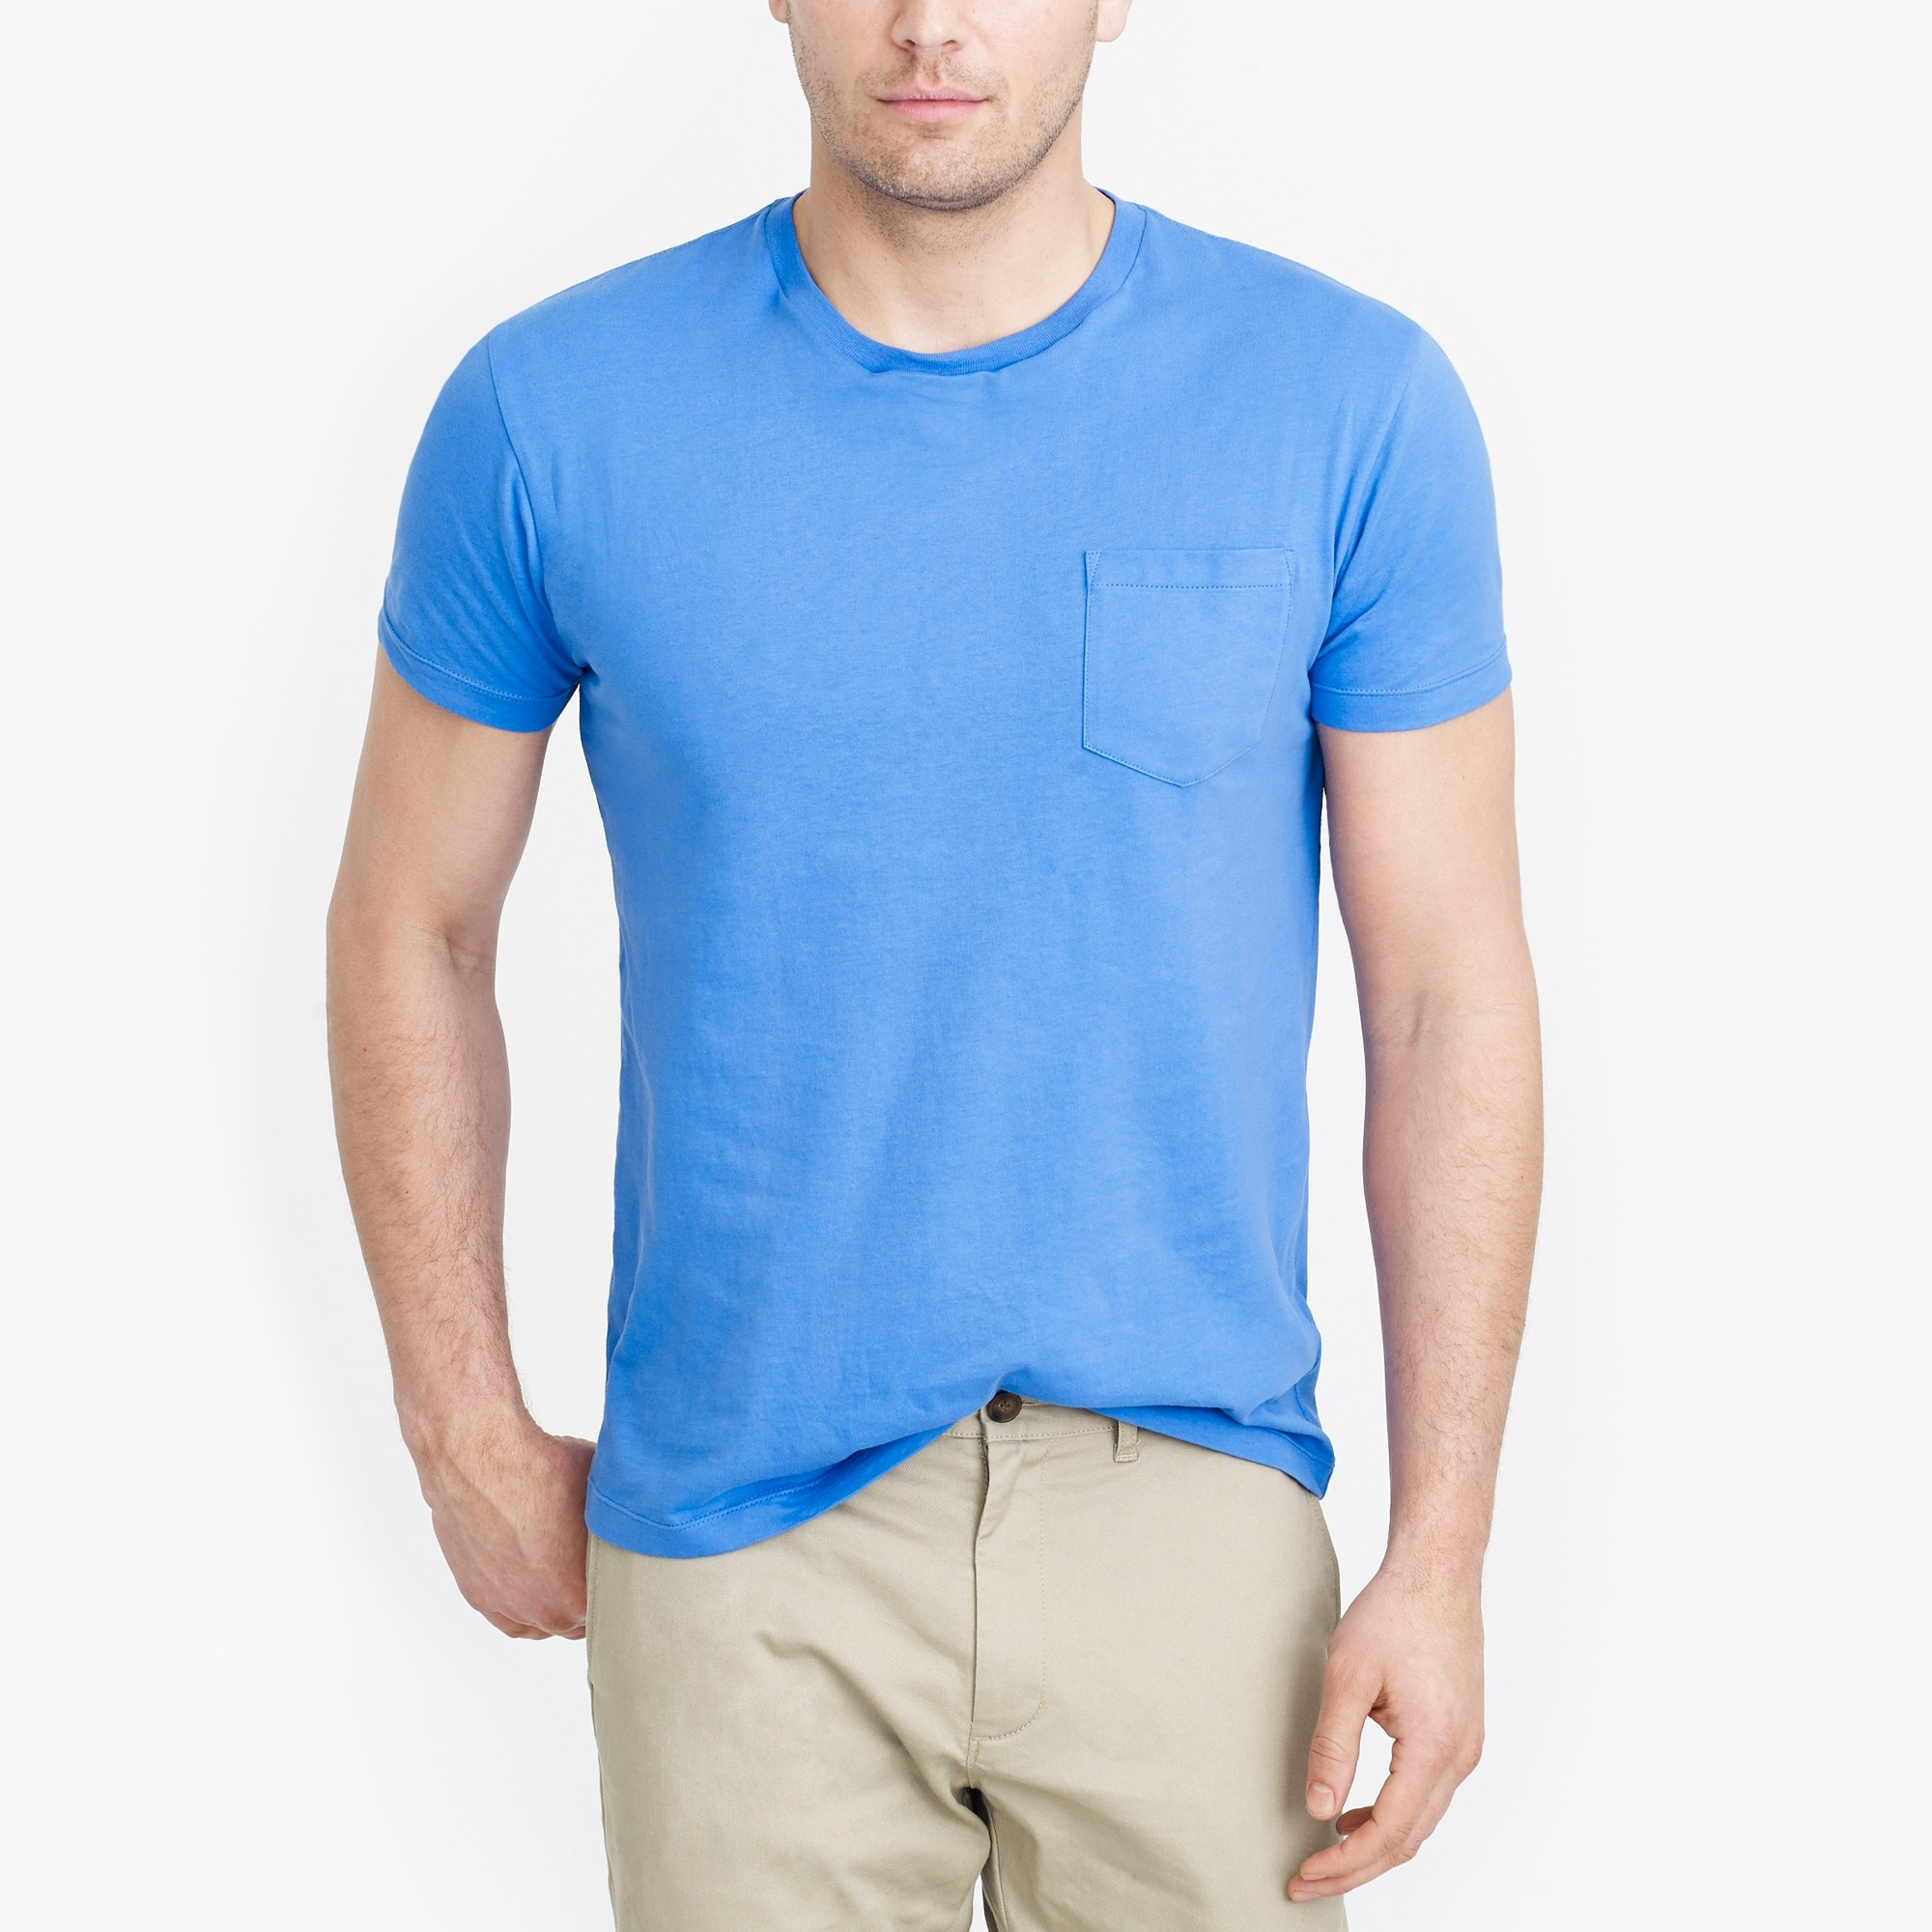 Image 1 for J.Crew Mercantile slim Broken-in pocket T-shirt